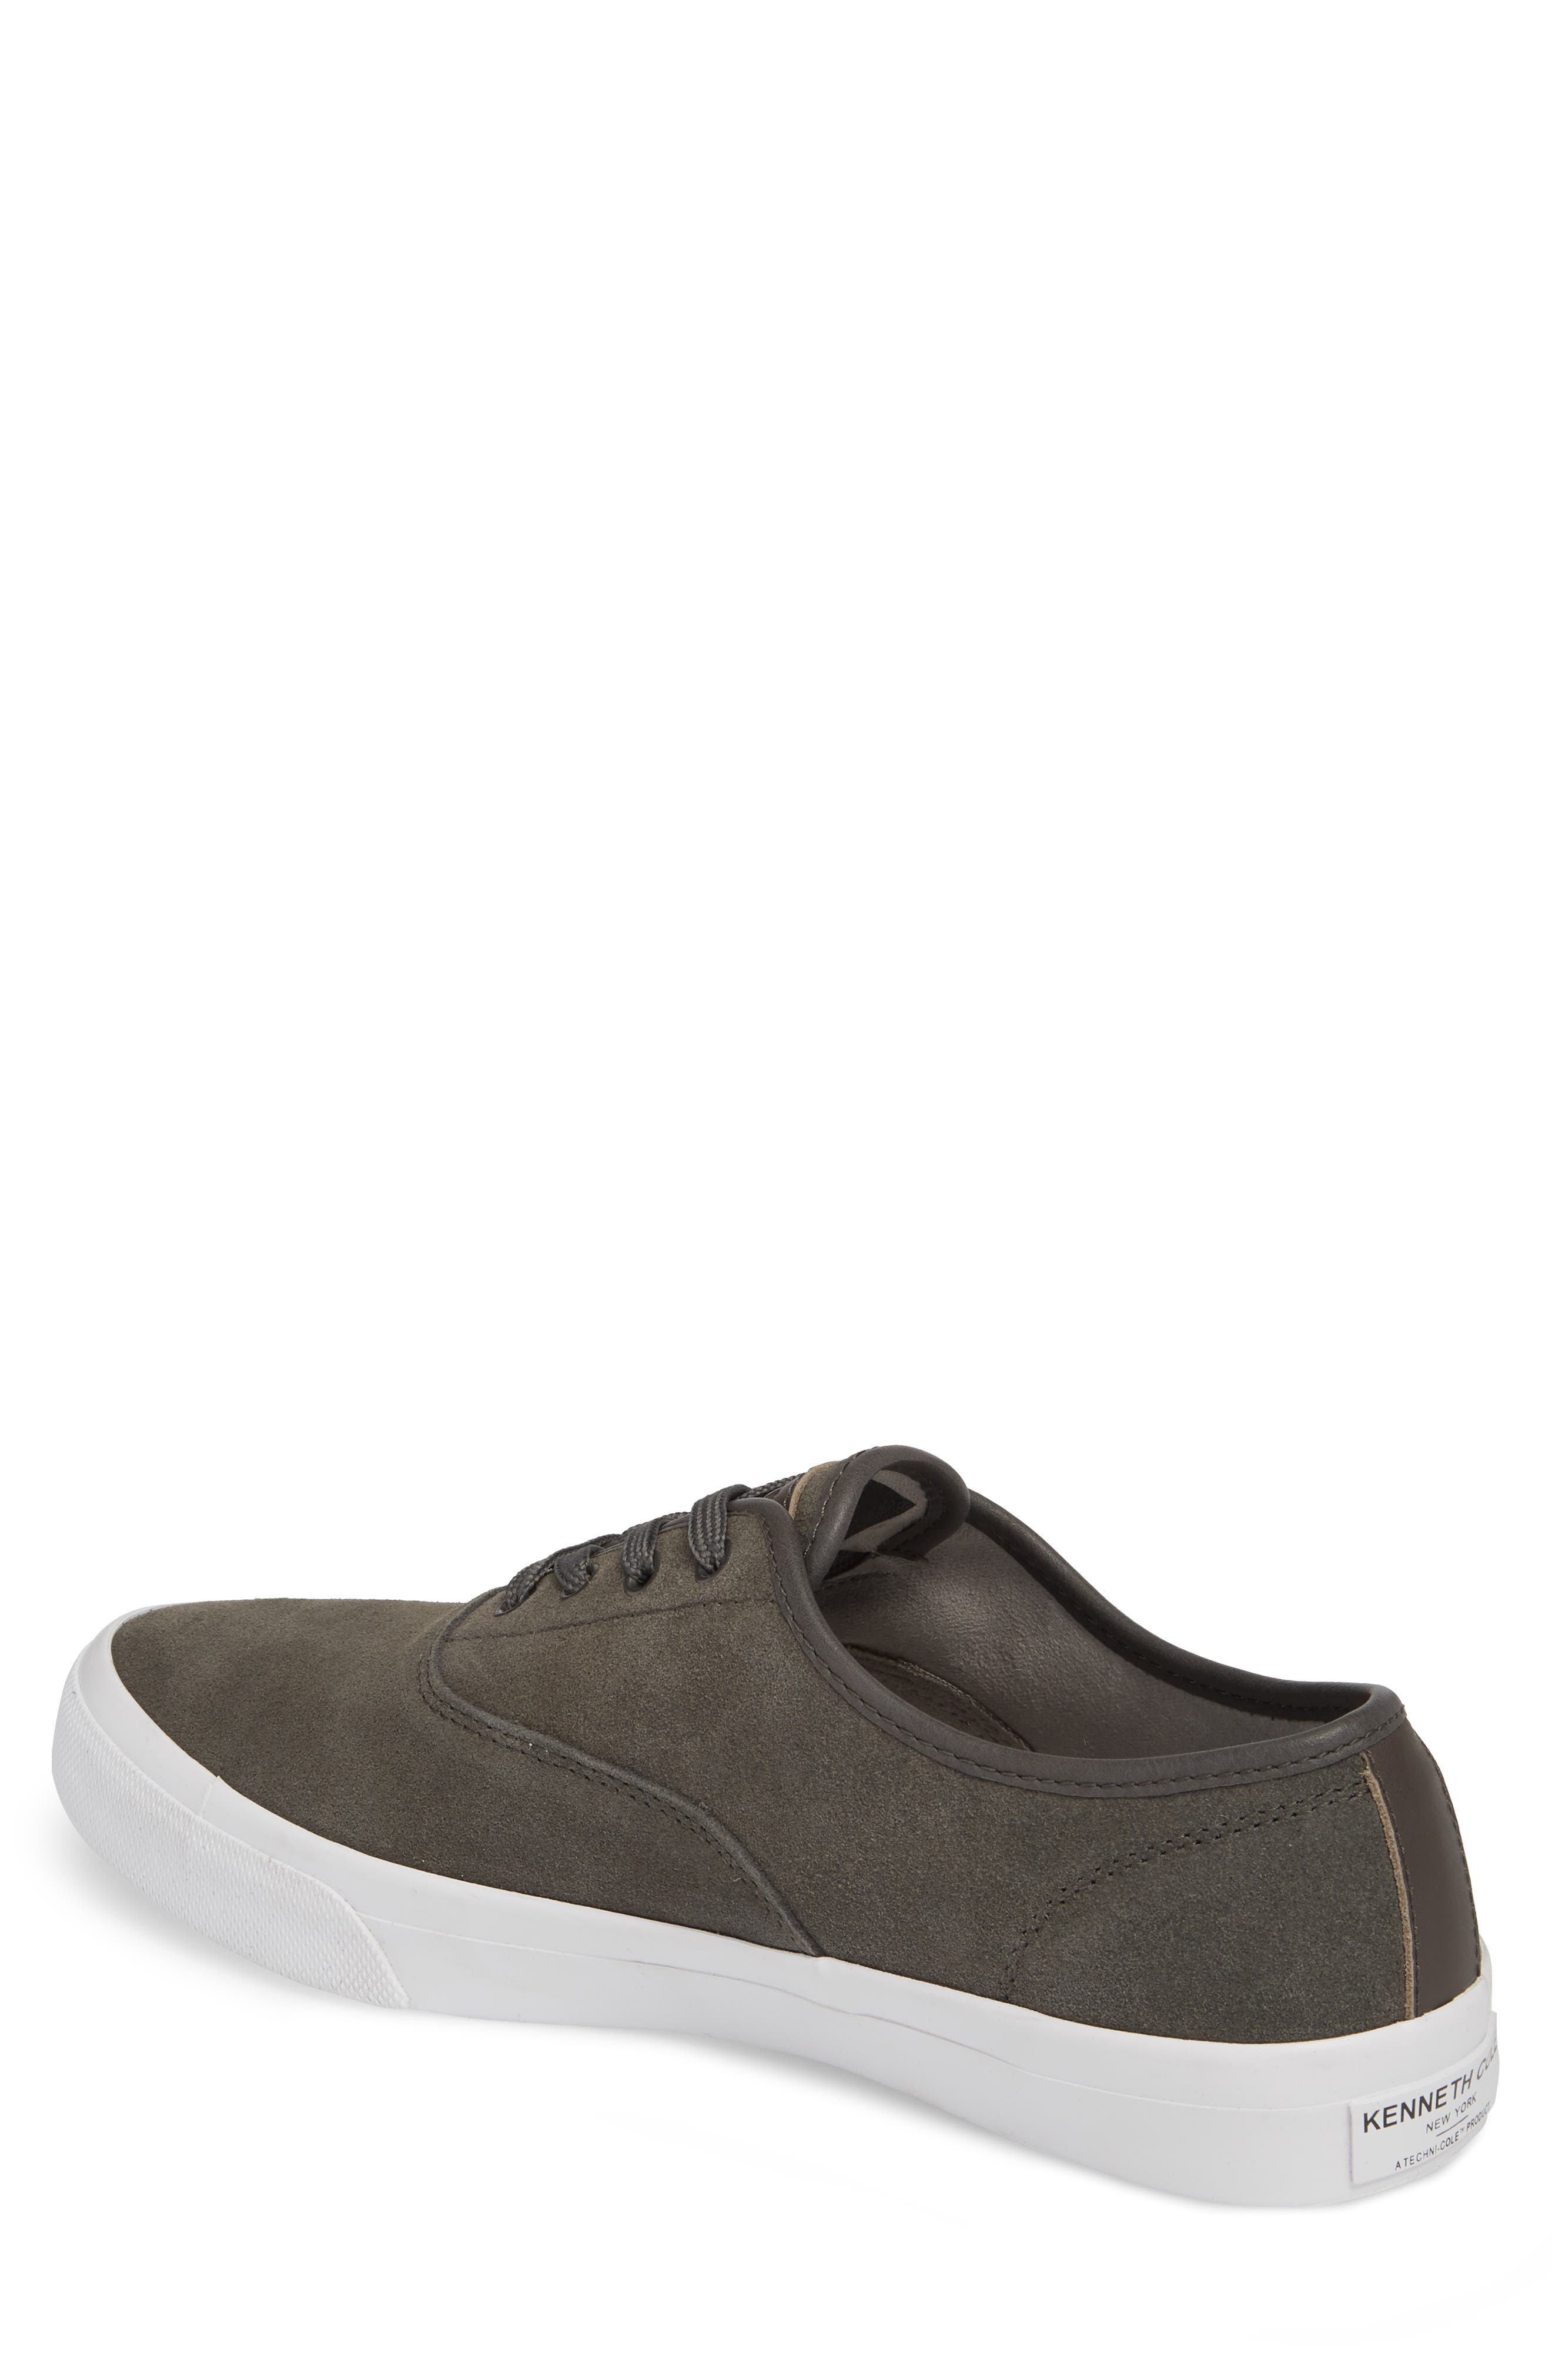 KENNETH COLE NEW YORK, Toor Low Top Sneaker, Alternate thumbnail 2, color, GREY COMBO SUEDE